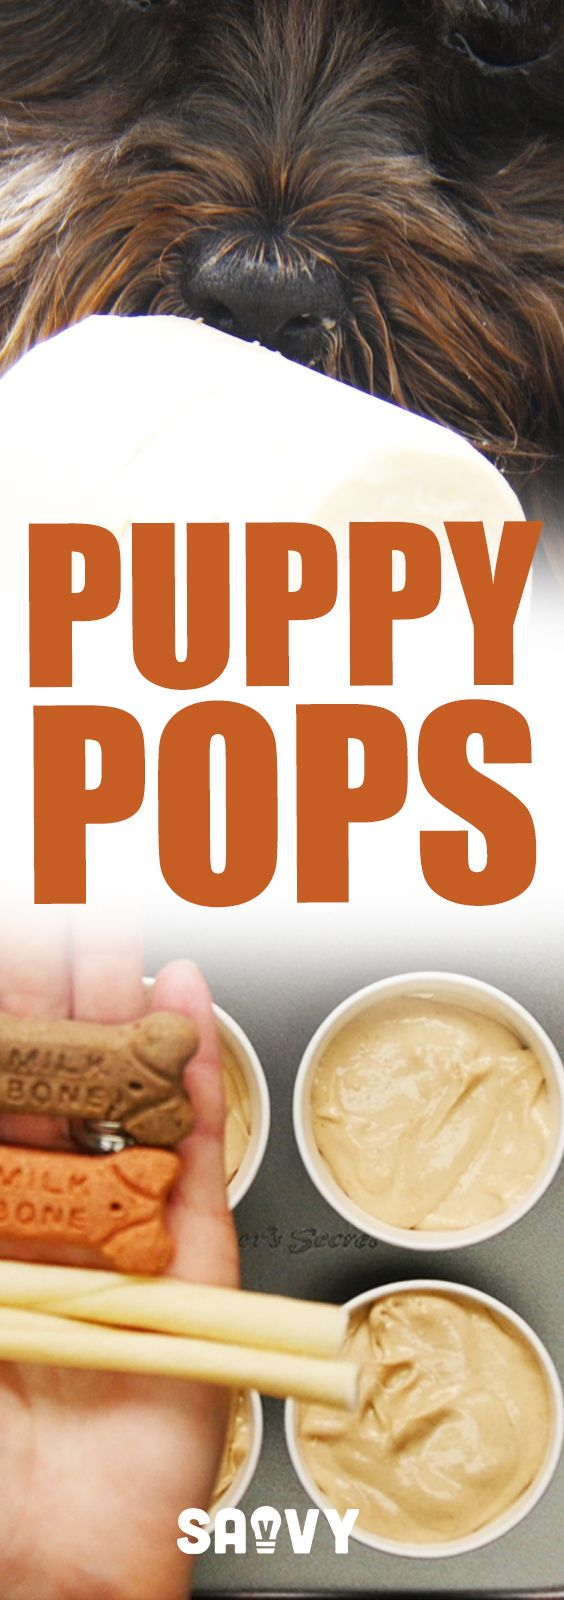 Pooches will go crazy for these puppy pops! Not only are they a delicious treat for your furry friends, but they help to keep your pup cool in the summer heat.  These are so easy to make that you can get your kids to help prepare them. If your dog has allergies to any of the ingredients, make sure to omit them or find alternatives.